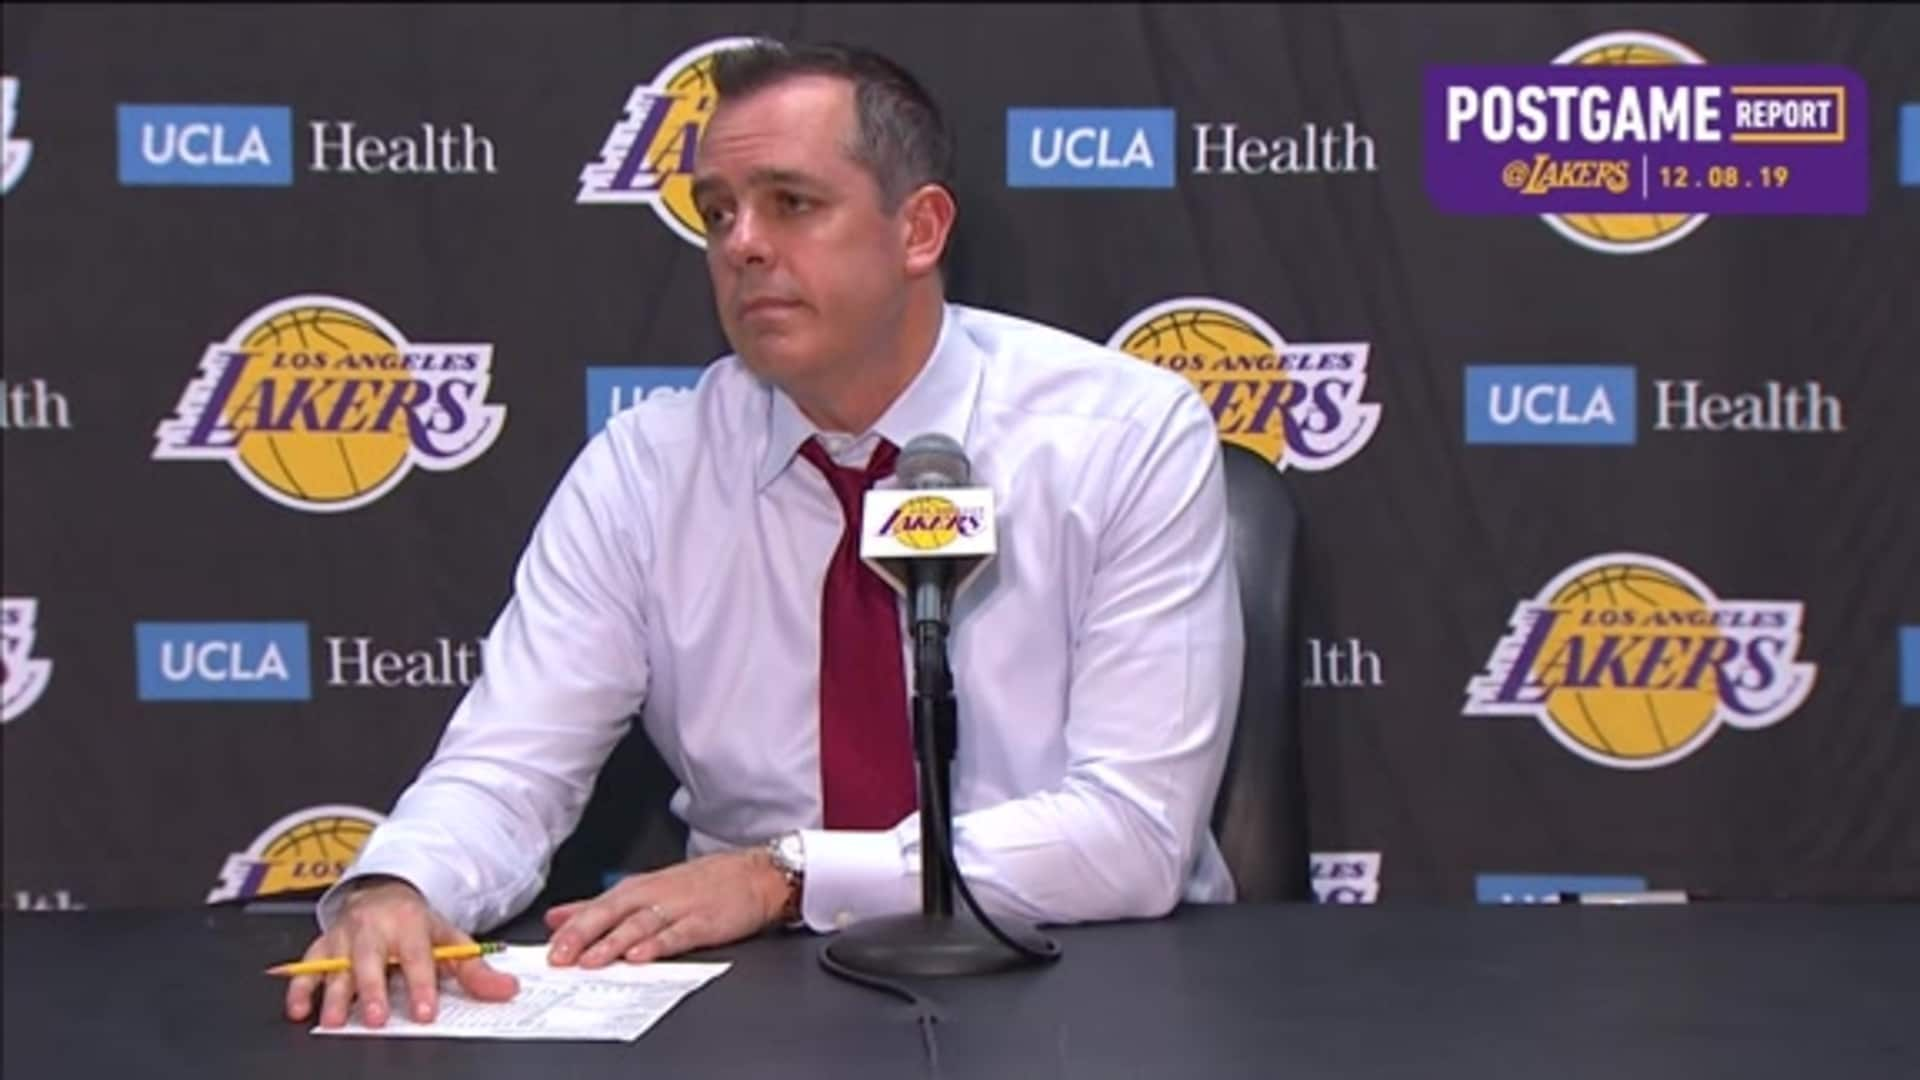 Lakers Postgame: Frank Vogel (12/8/19)